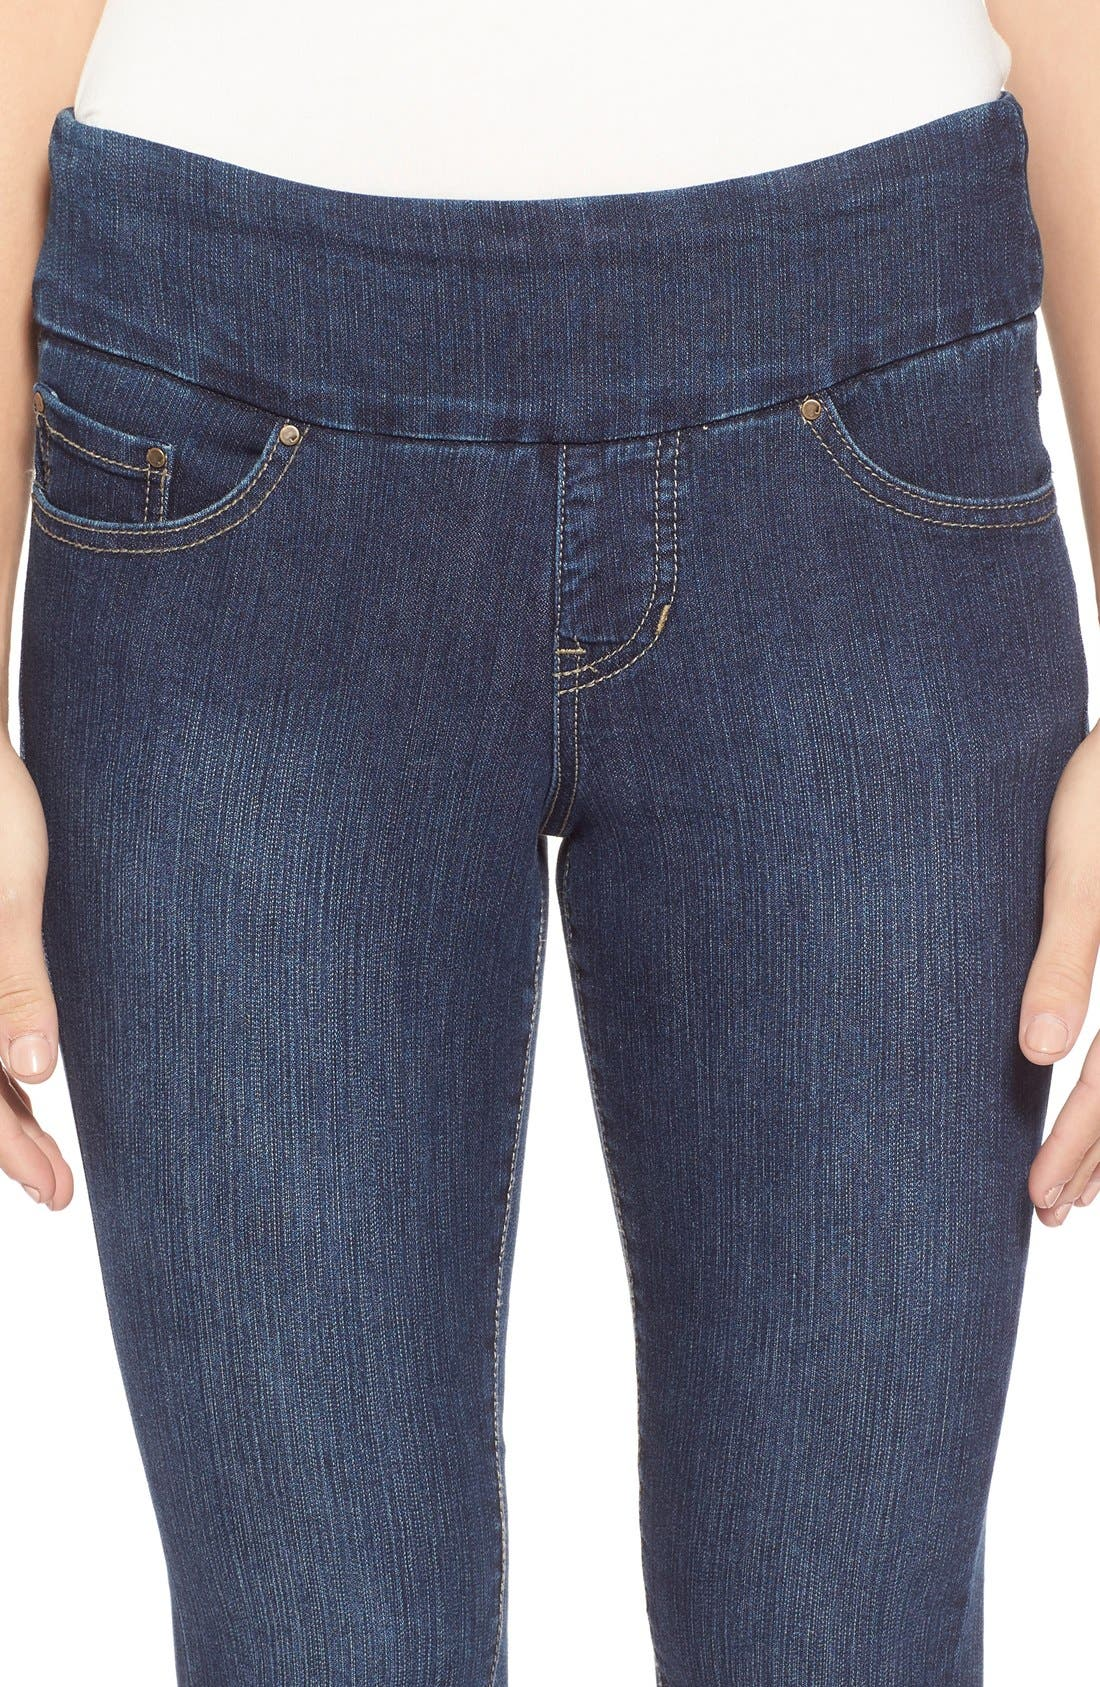 Alternate Image 4  - Jag Jeans 'Nora' Pull-On Stretch Skinny Jeans (Anchor Blue) (Regular & Petite)